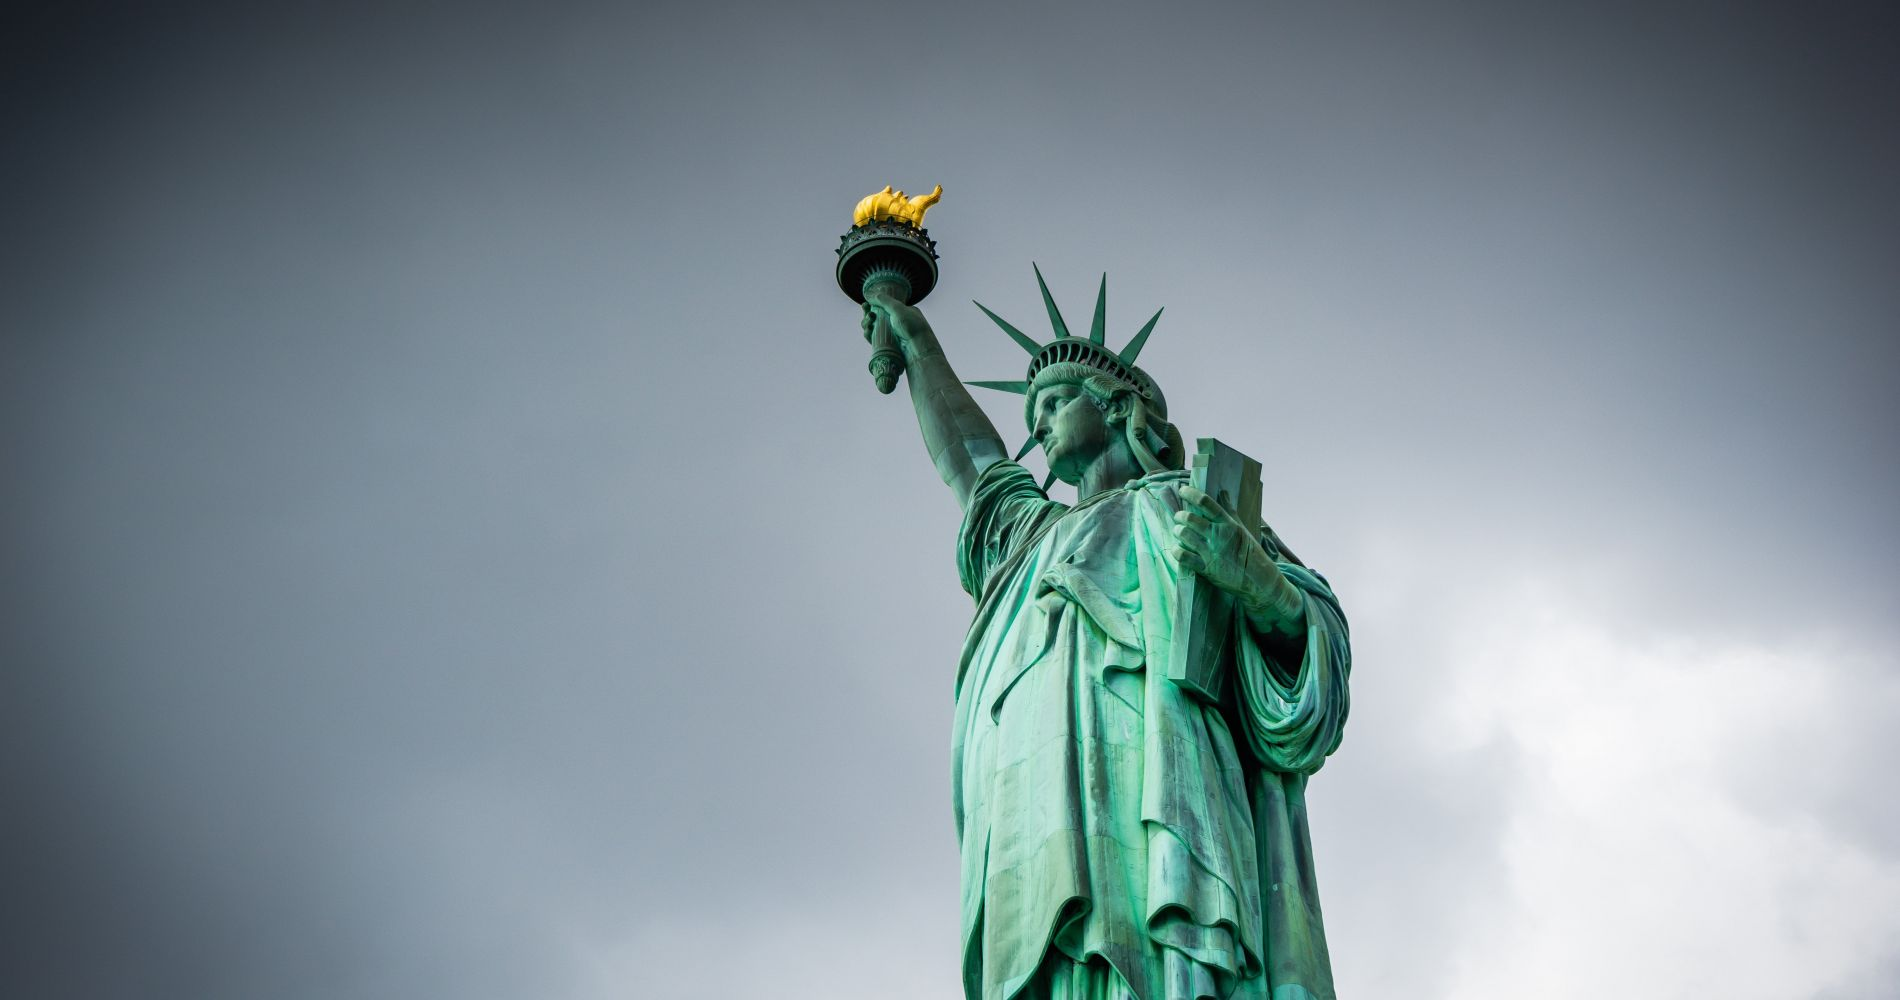 Visit New York attractions with Statue Of Liberty and Ellis Island Ferry